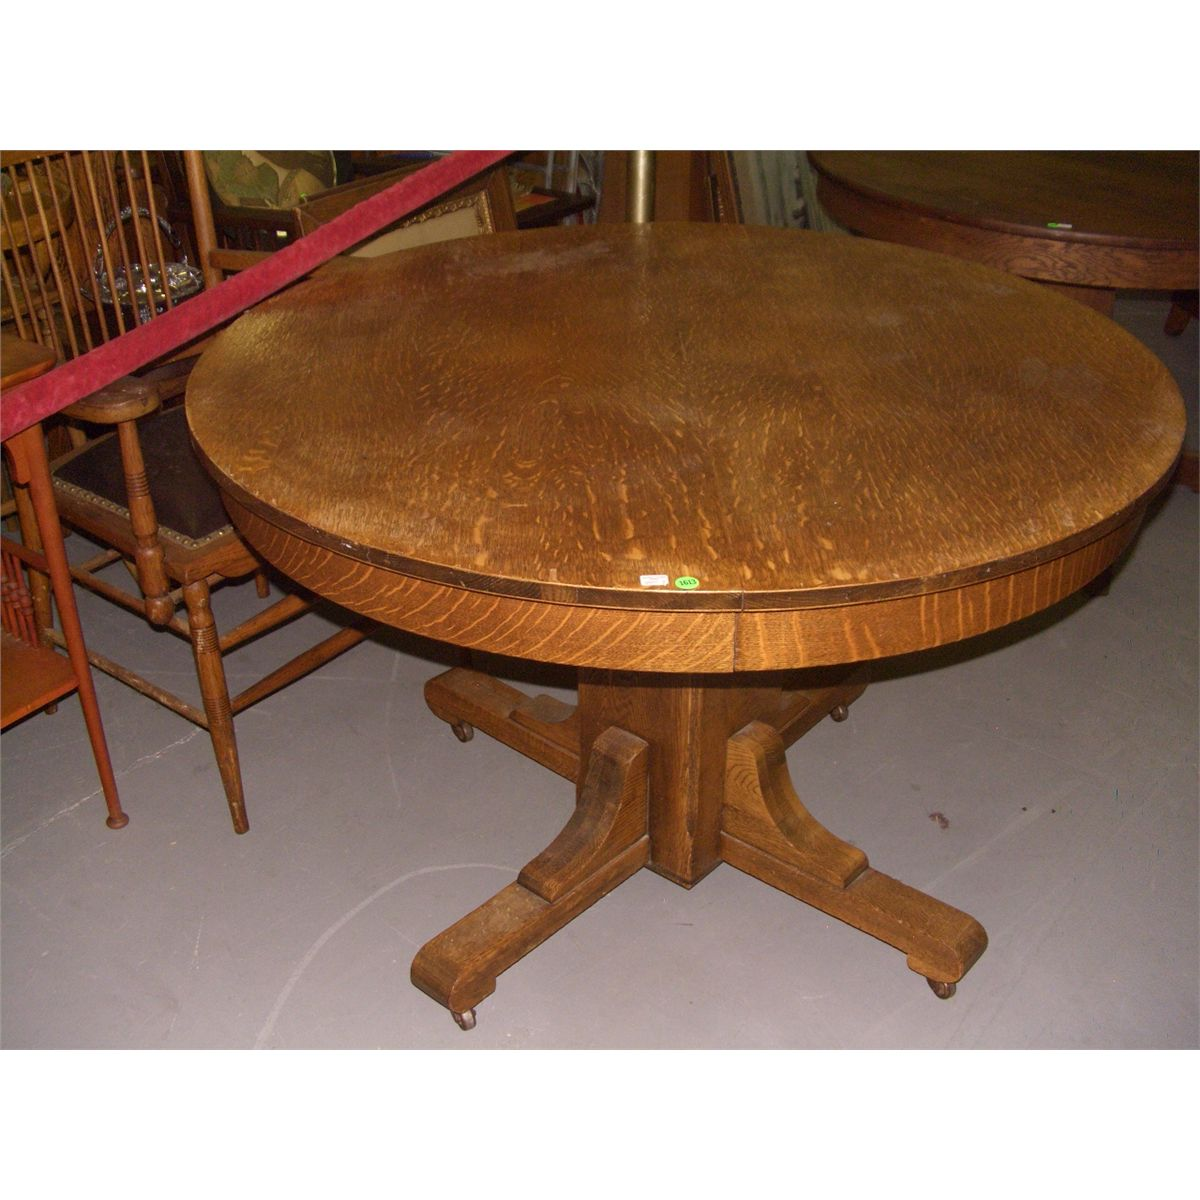 Original oak arts and crafts mission dining table ssr for Arts and crafts style table